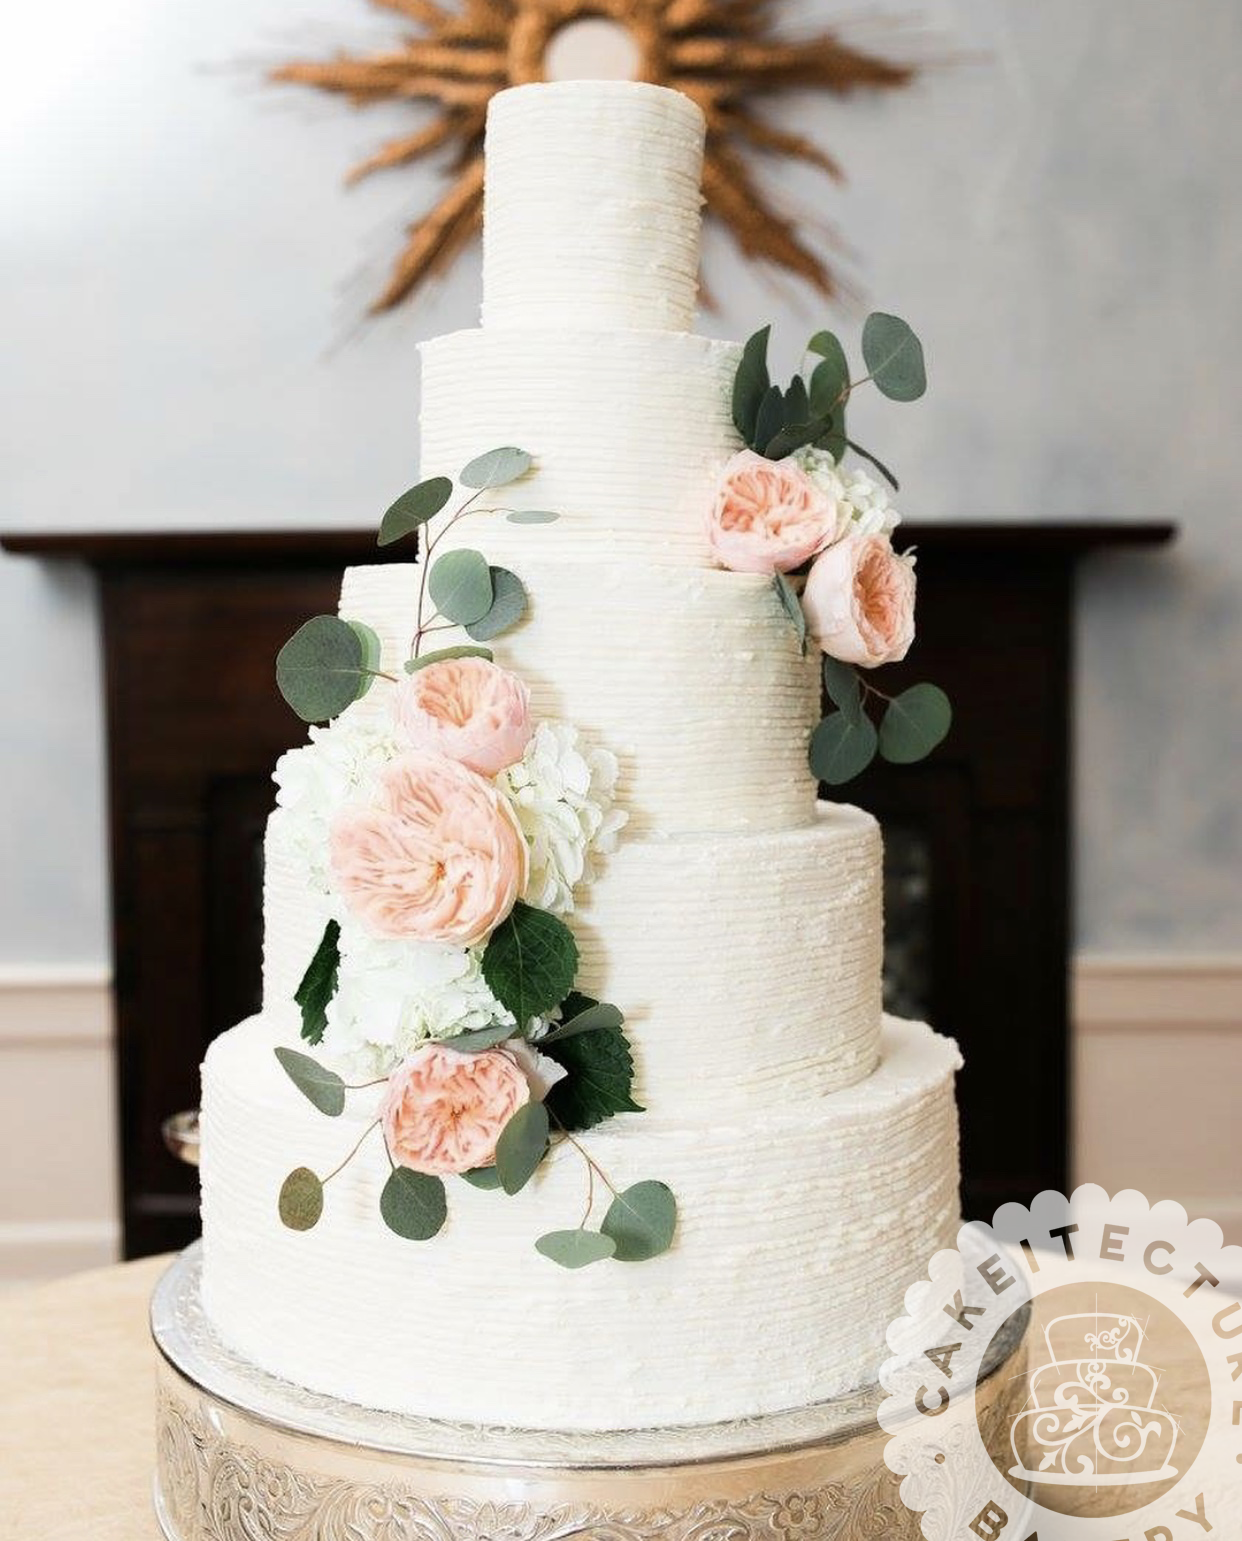 Cakeitecture Bakery wedding cake combed.png